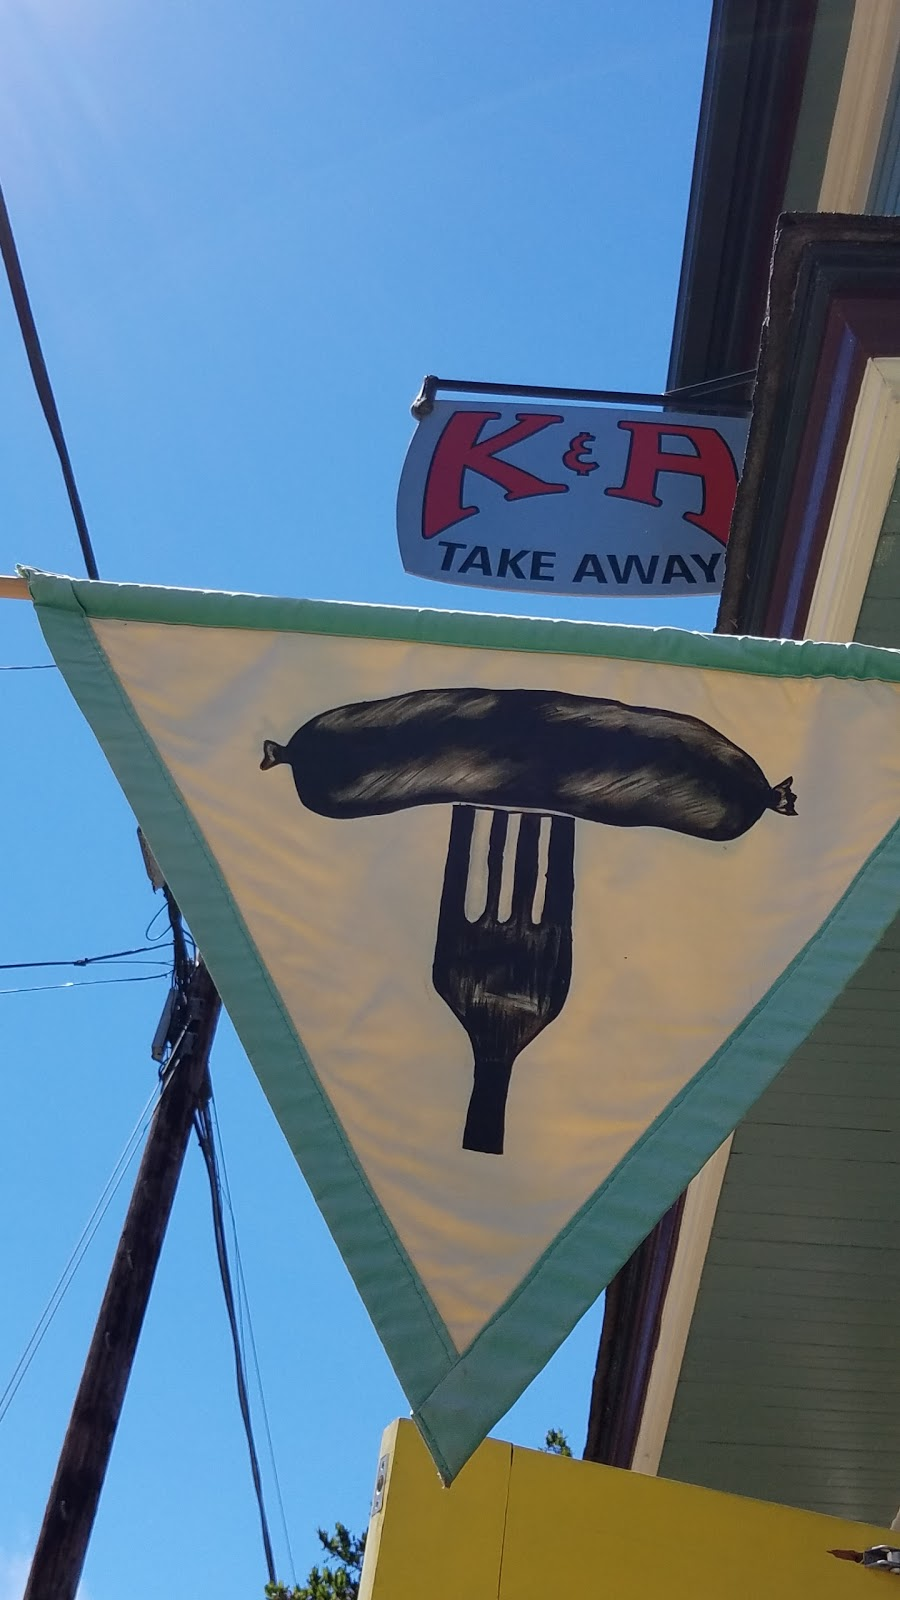 K&A Take Away - meal takeaway  | Photo 9 of 9 | Address: 13 Dilon Beach Road, Tomales, CA 94971, USA | Phone: (707) 878-2969